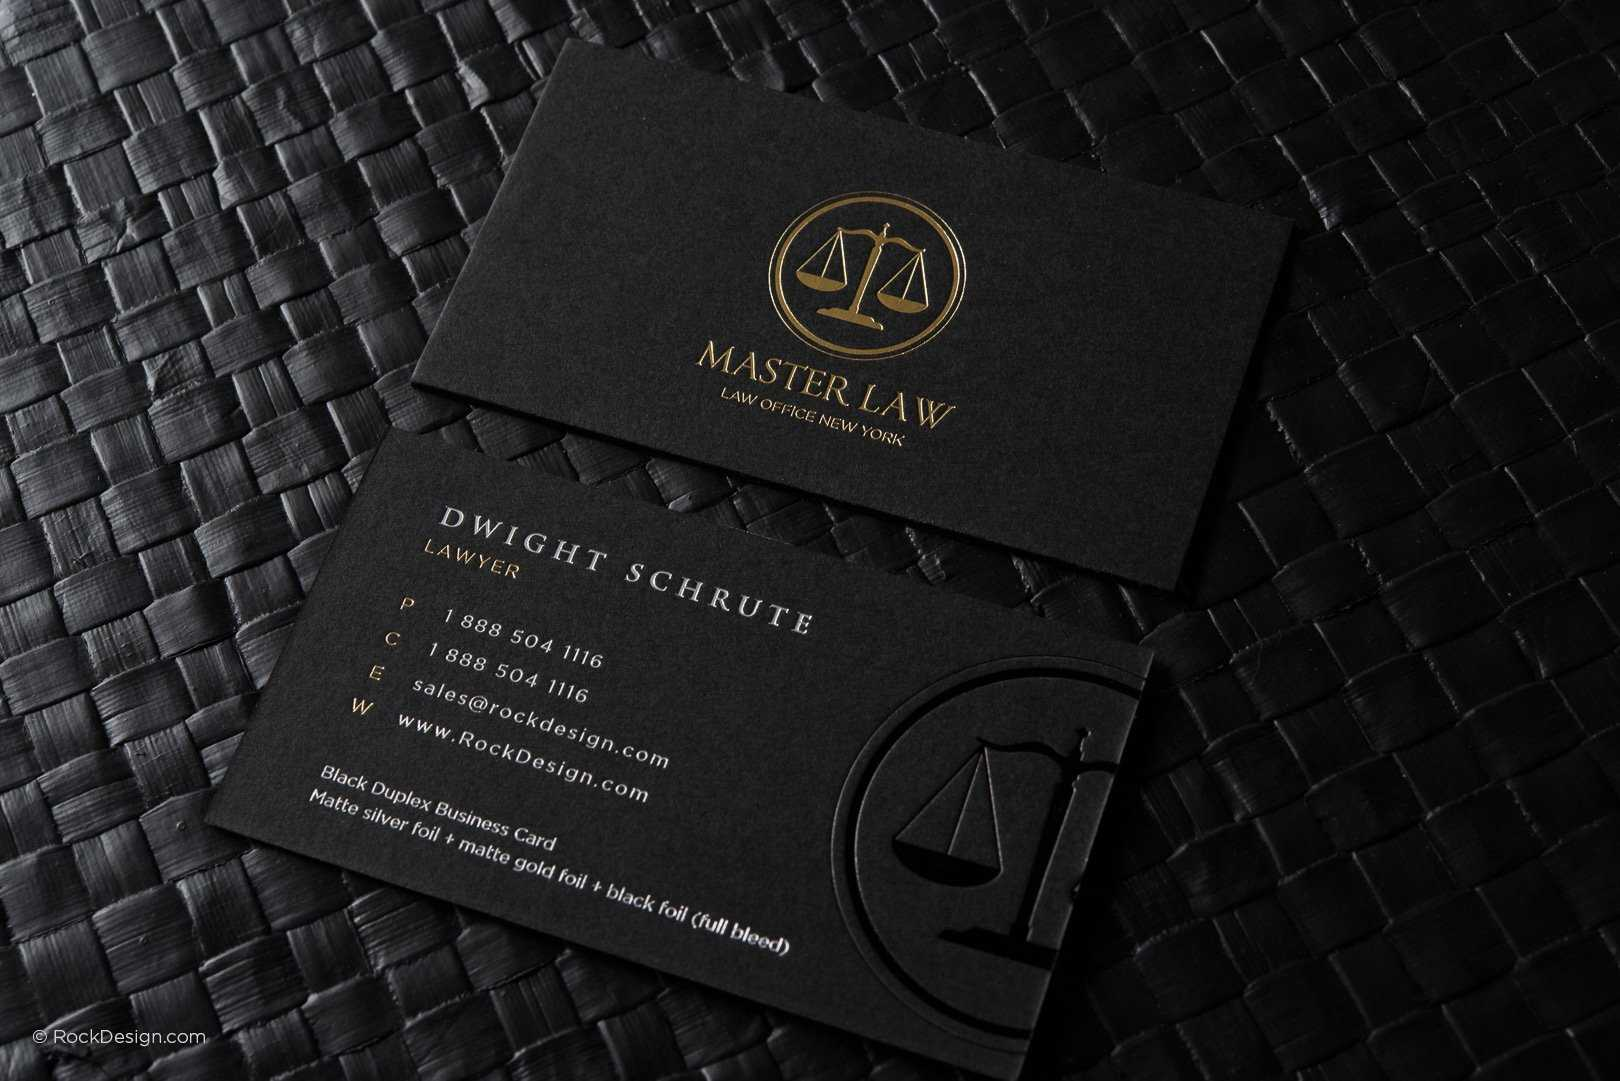 Legal Business Cards Templates Free - Atlantaauctionco Throughout Legal Business Cards Templates Free